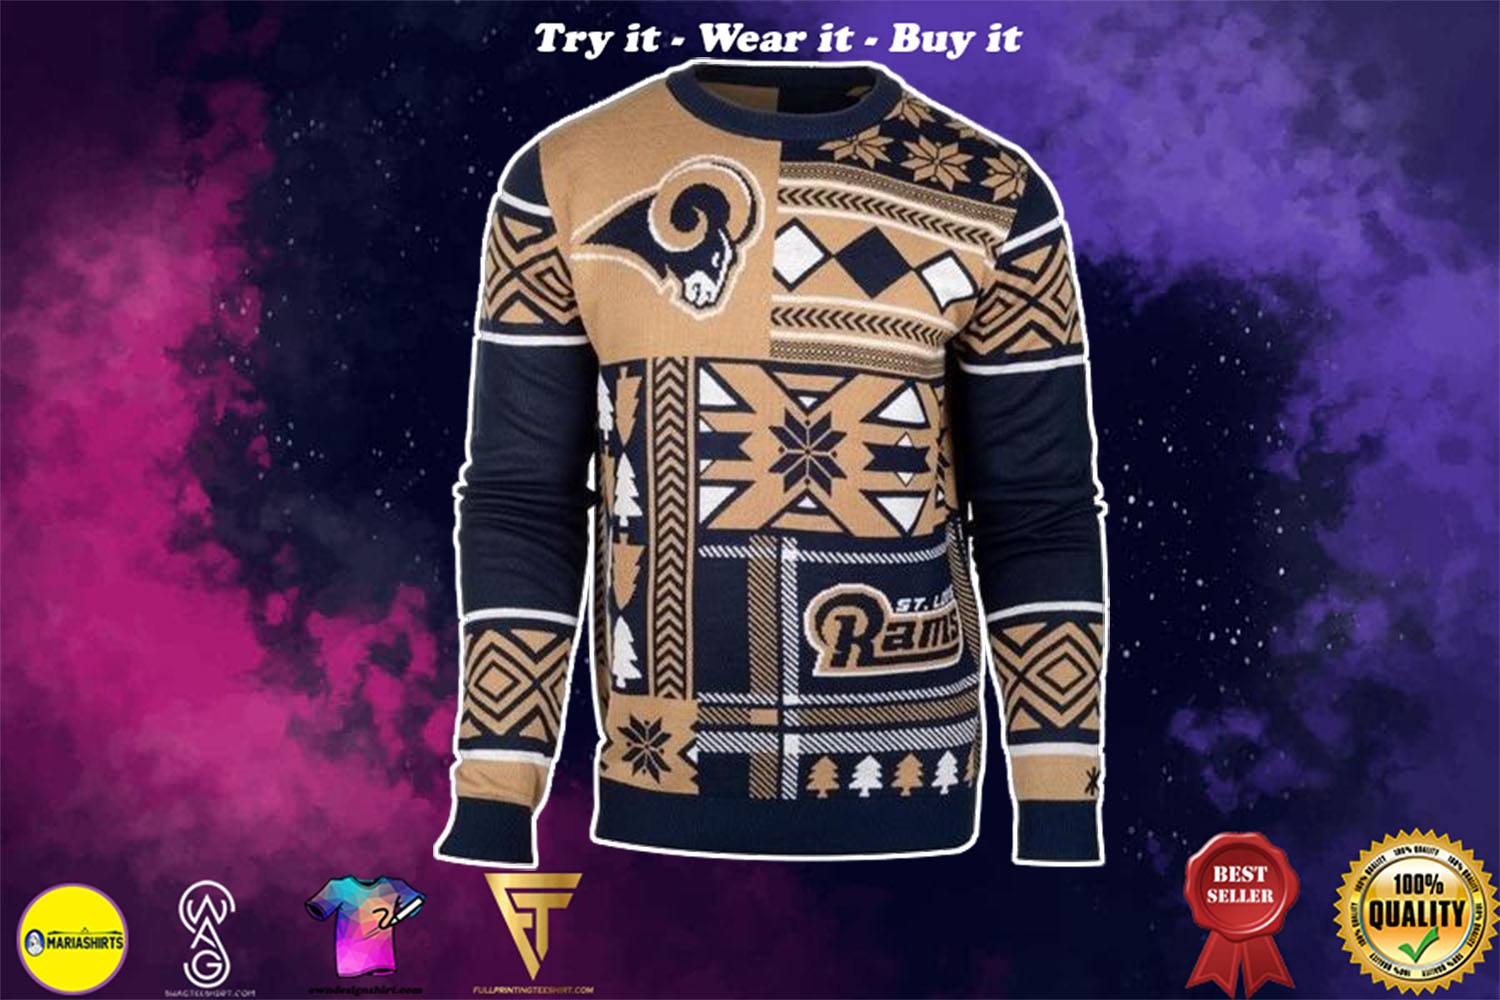 [special edition] st louis rams patches ugly christmas sweater - maria